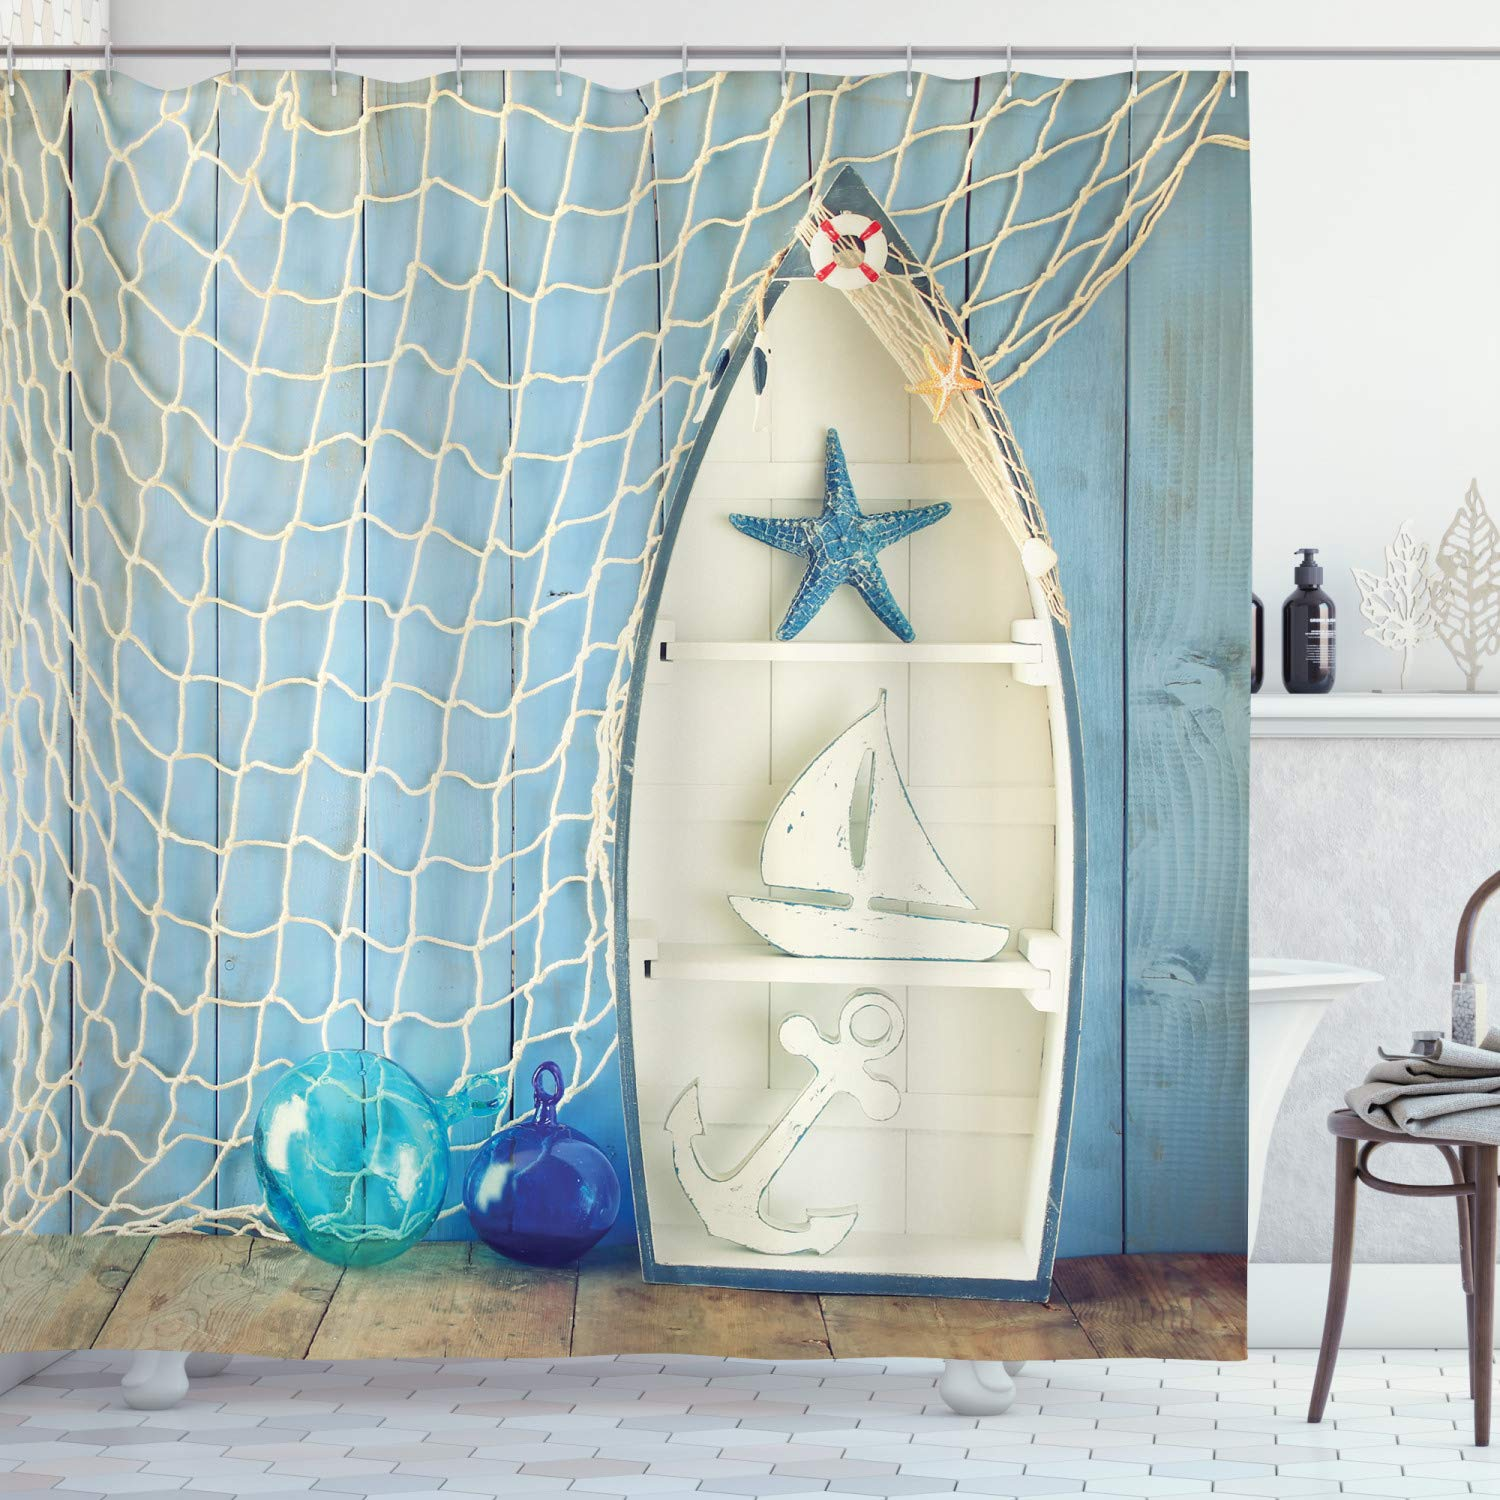 Ambesonne Nautical Shower Curtain Sea Objects On Wooden Backdrop With Vintage Boat Starfish Shell Fishing Net Photo Cloth Fabric Bathroom Decor Set With Hooks 75 Long Blue Cream